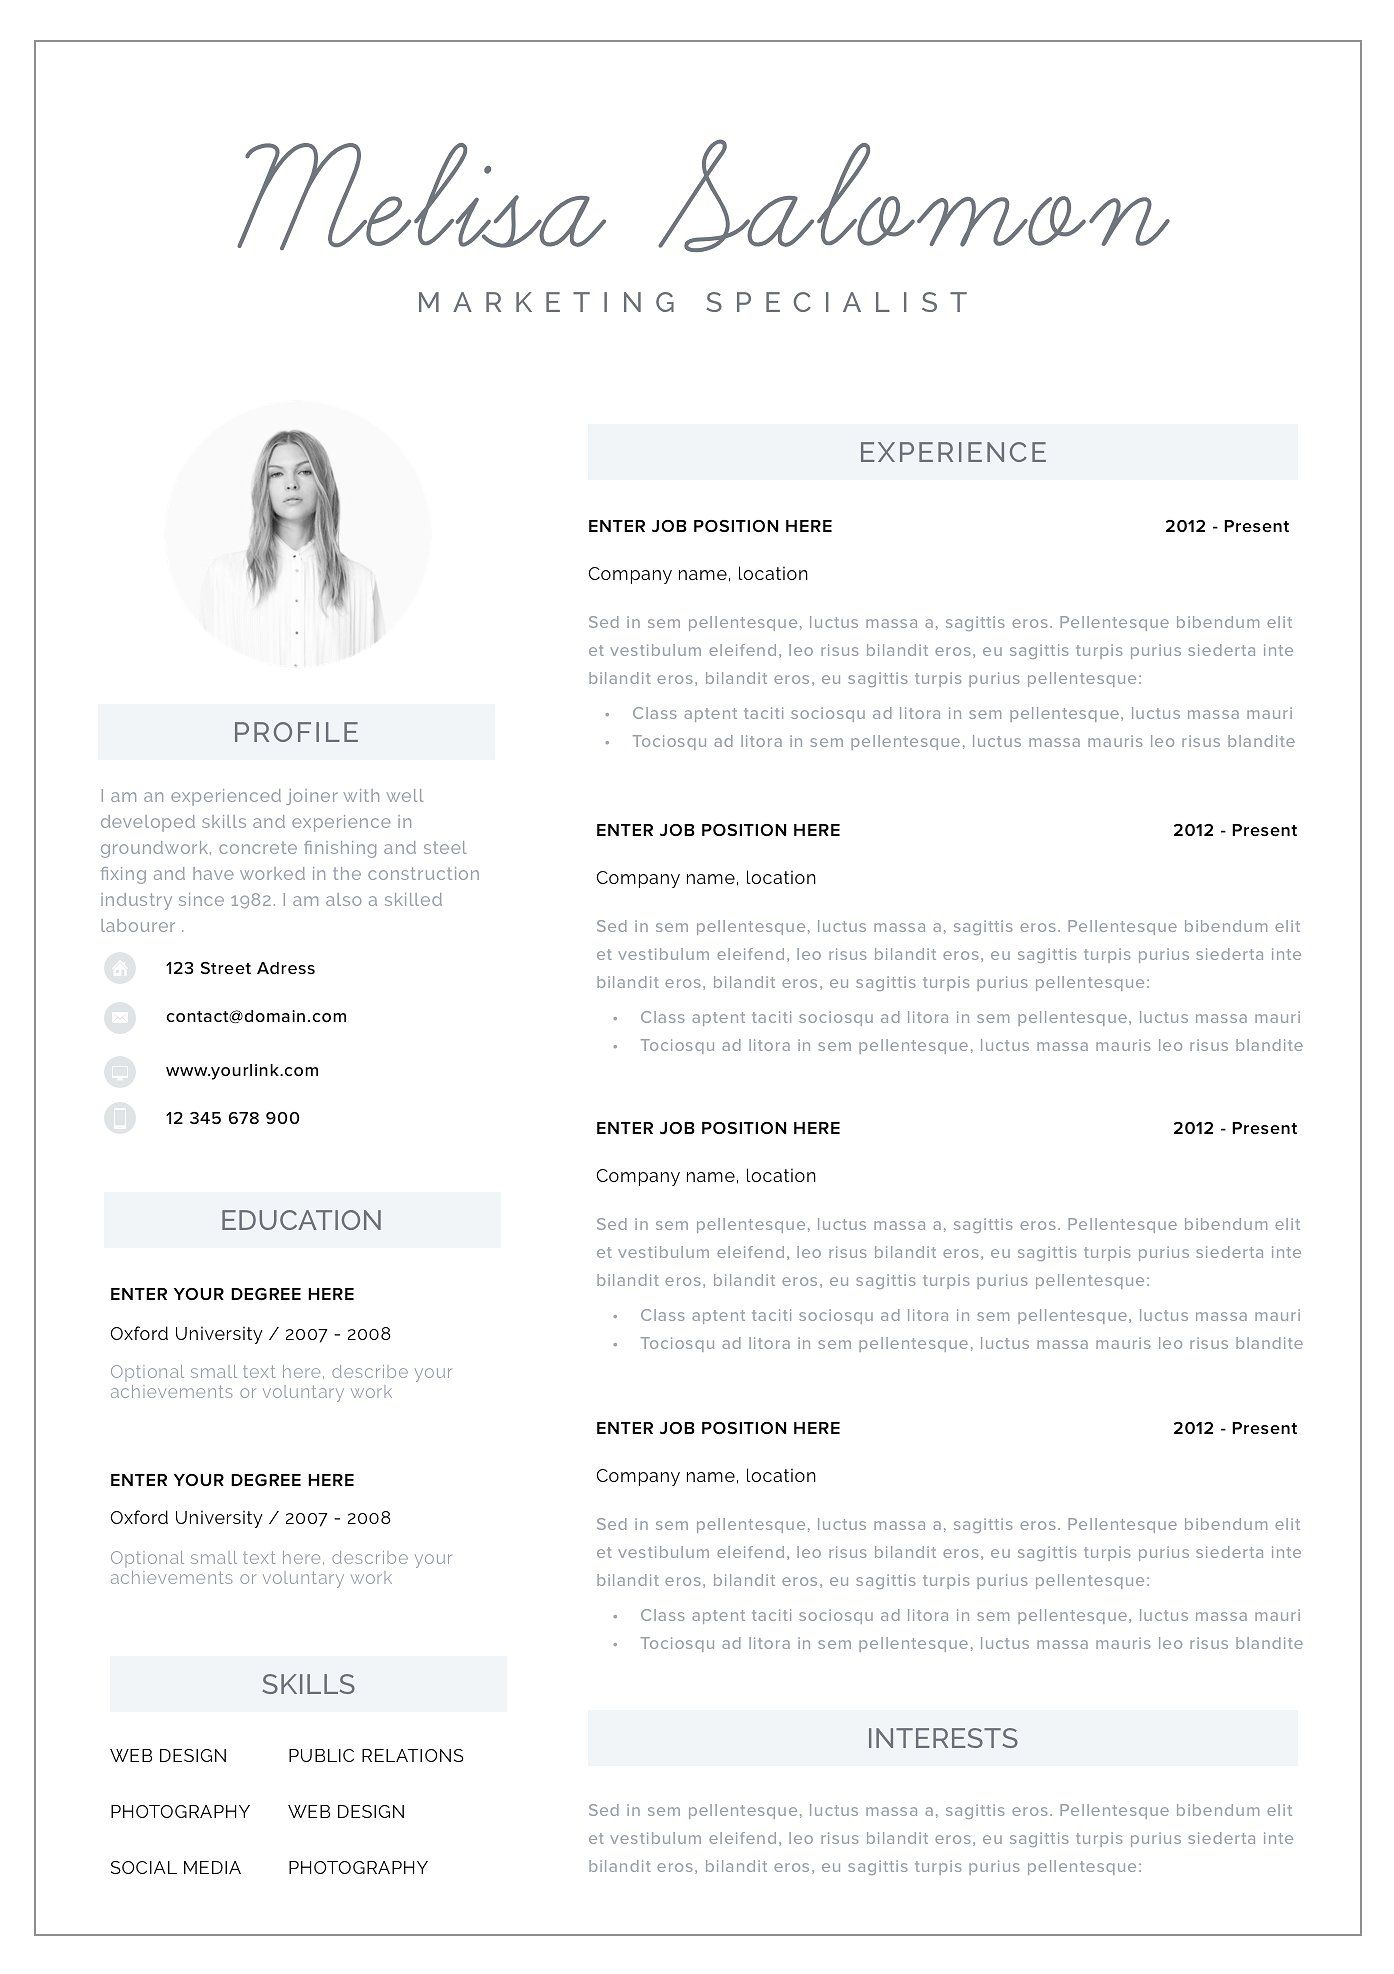 Resume Template 1, 2 page Melbourne Teaching resume